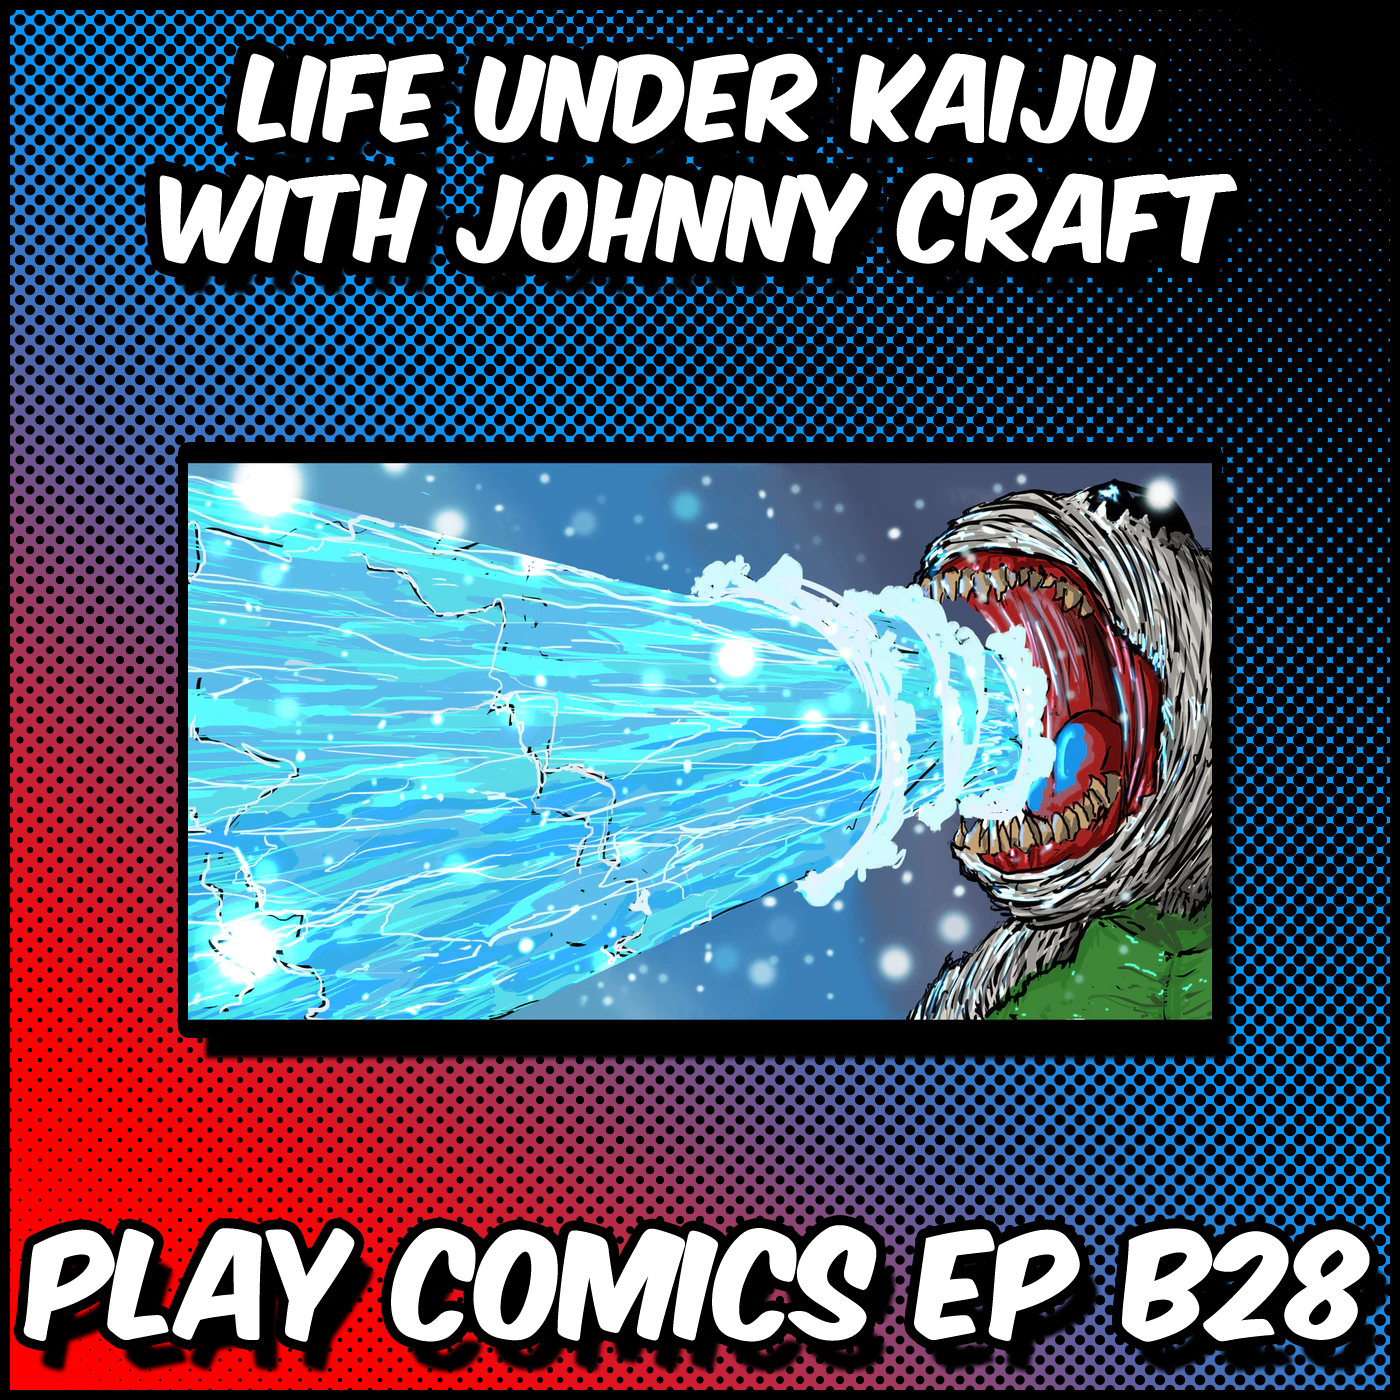 Life Under Kaiju with Johnny Craft